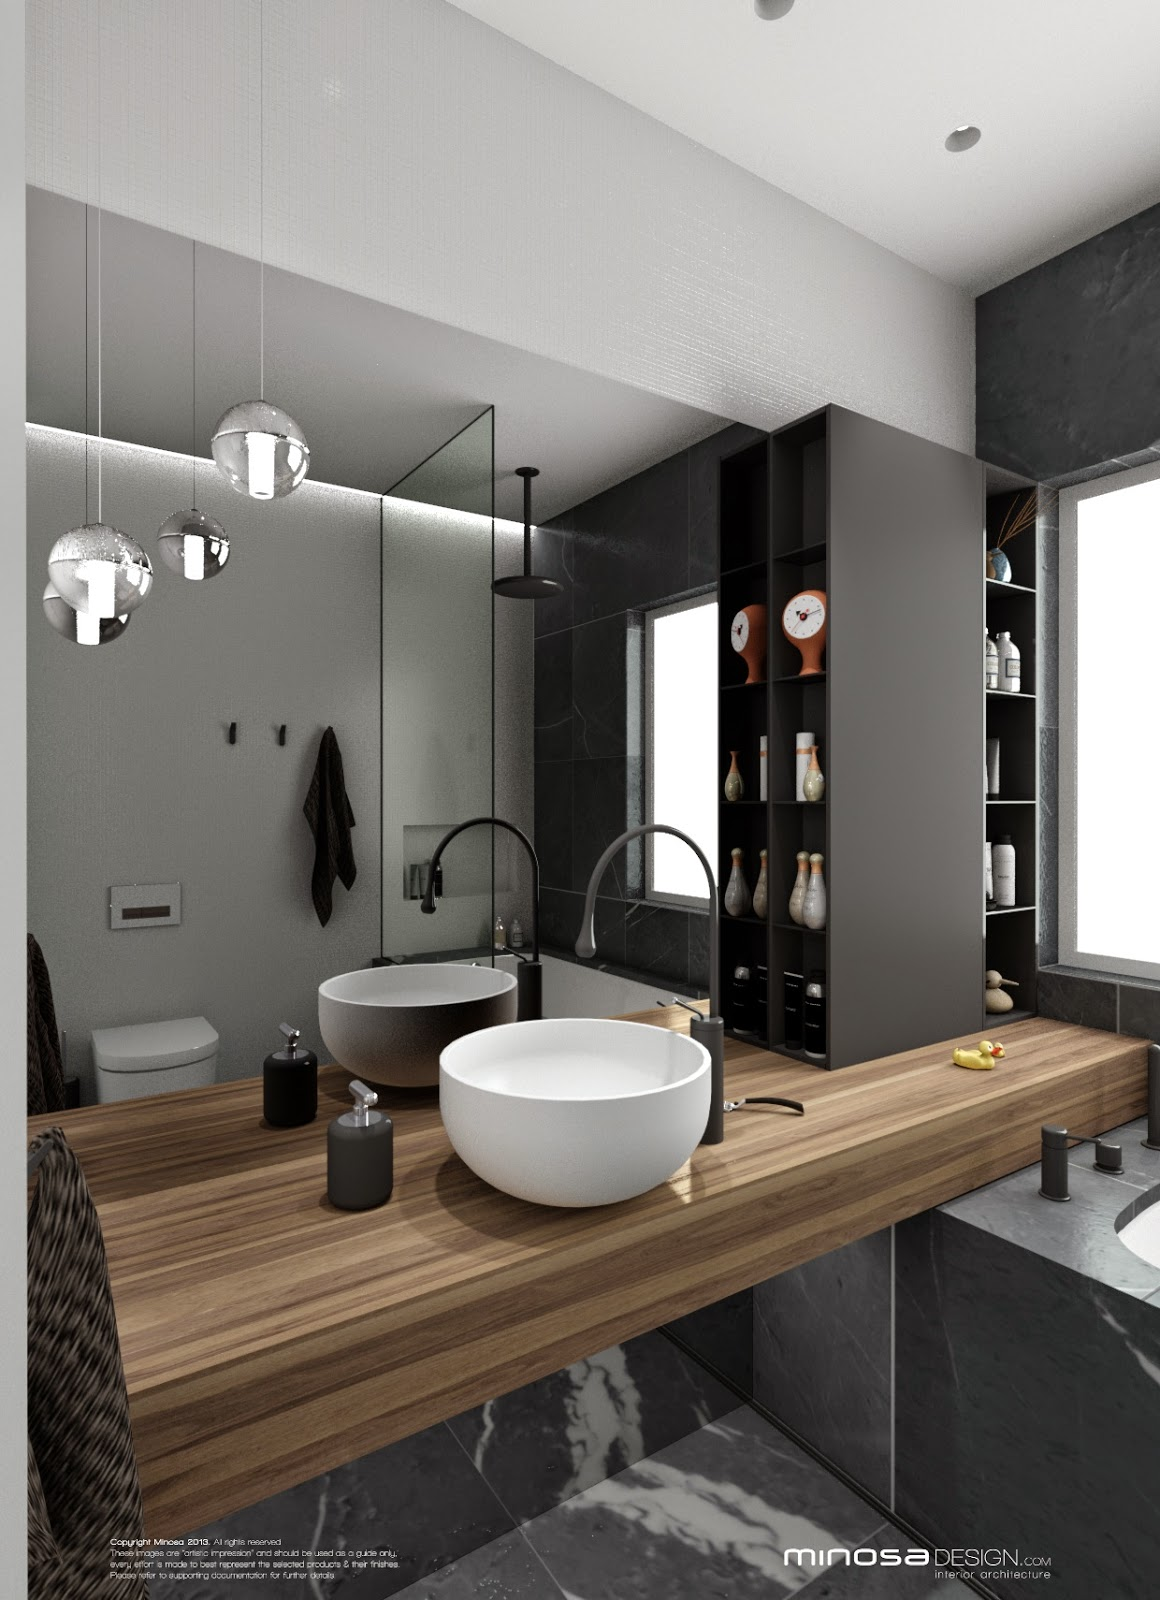 Minosa bathroom design small space feels large for Small spaces bathroom designs